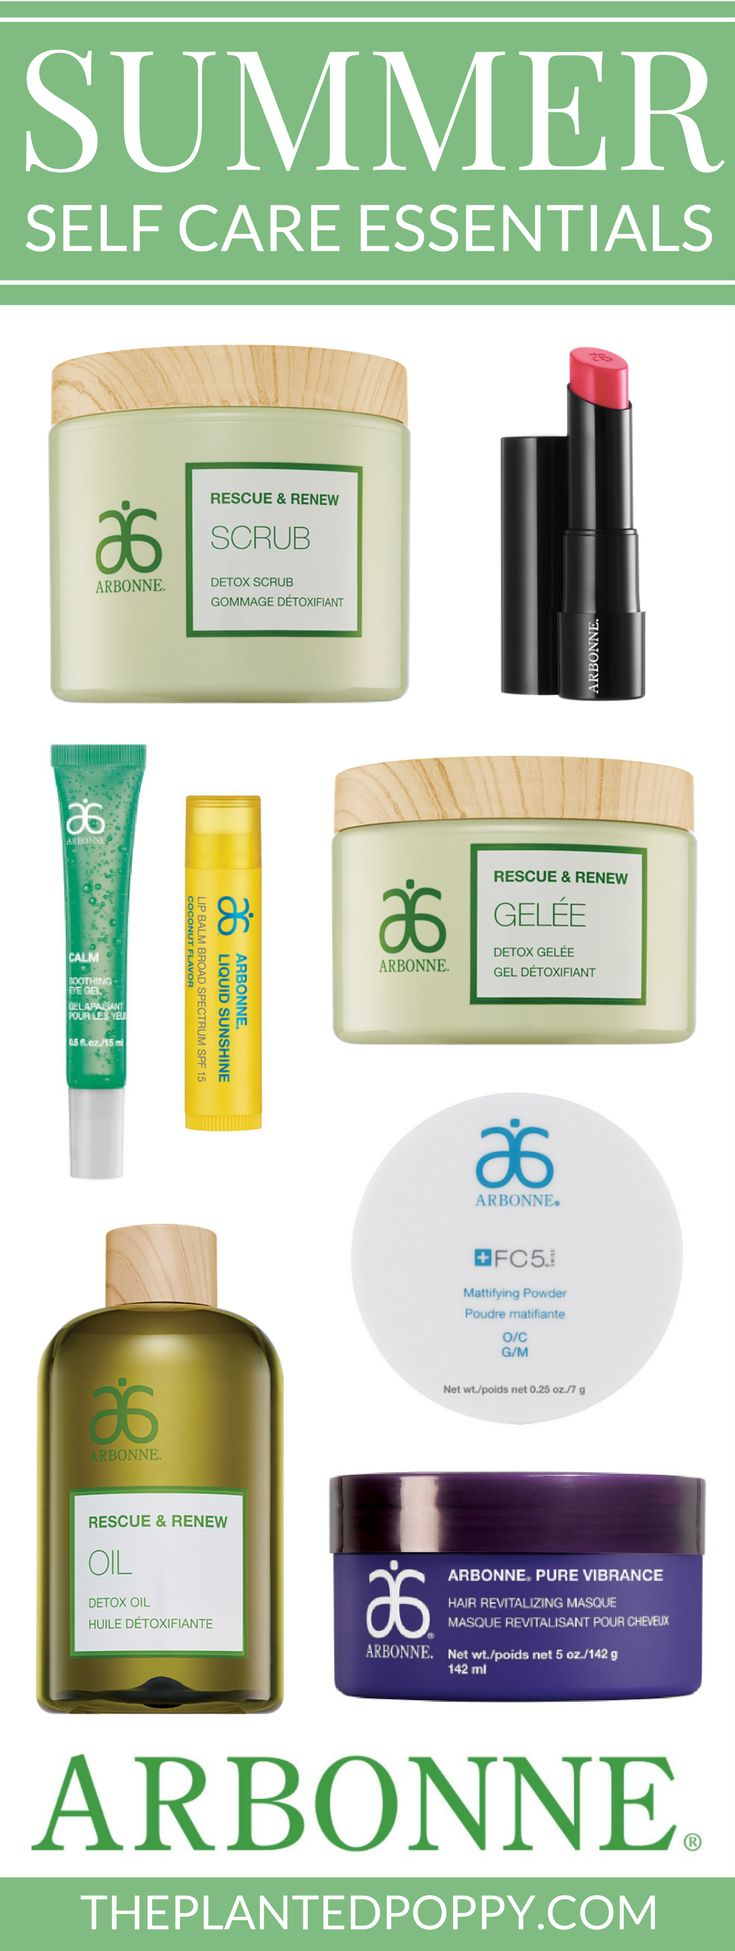 Treat yourself to summer self care that is vegan, cruelty-free, and free of toxic ingredients with Arbonne! Read top summer product picks and reviews from Mandi Marin, Independent Consultant, and then check out the full product line at mandimarin.arbonne.com